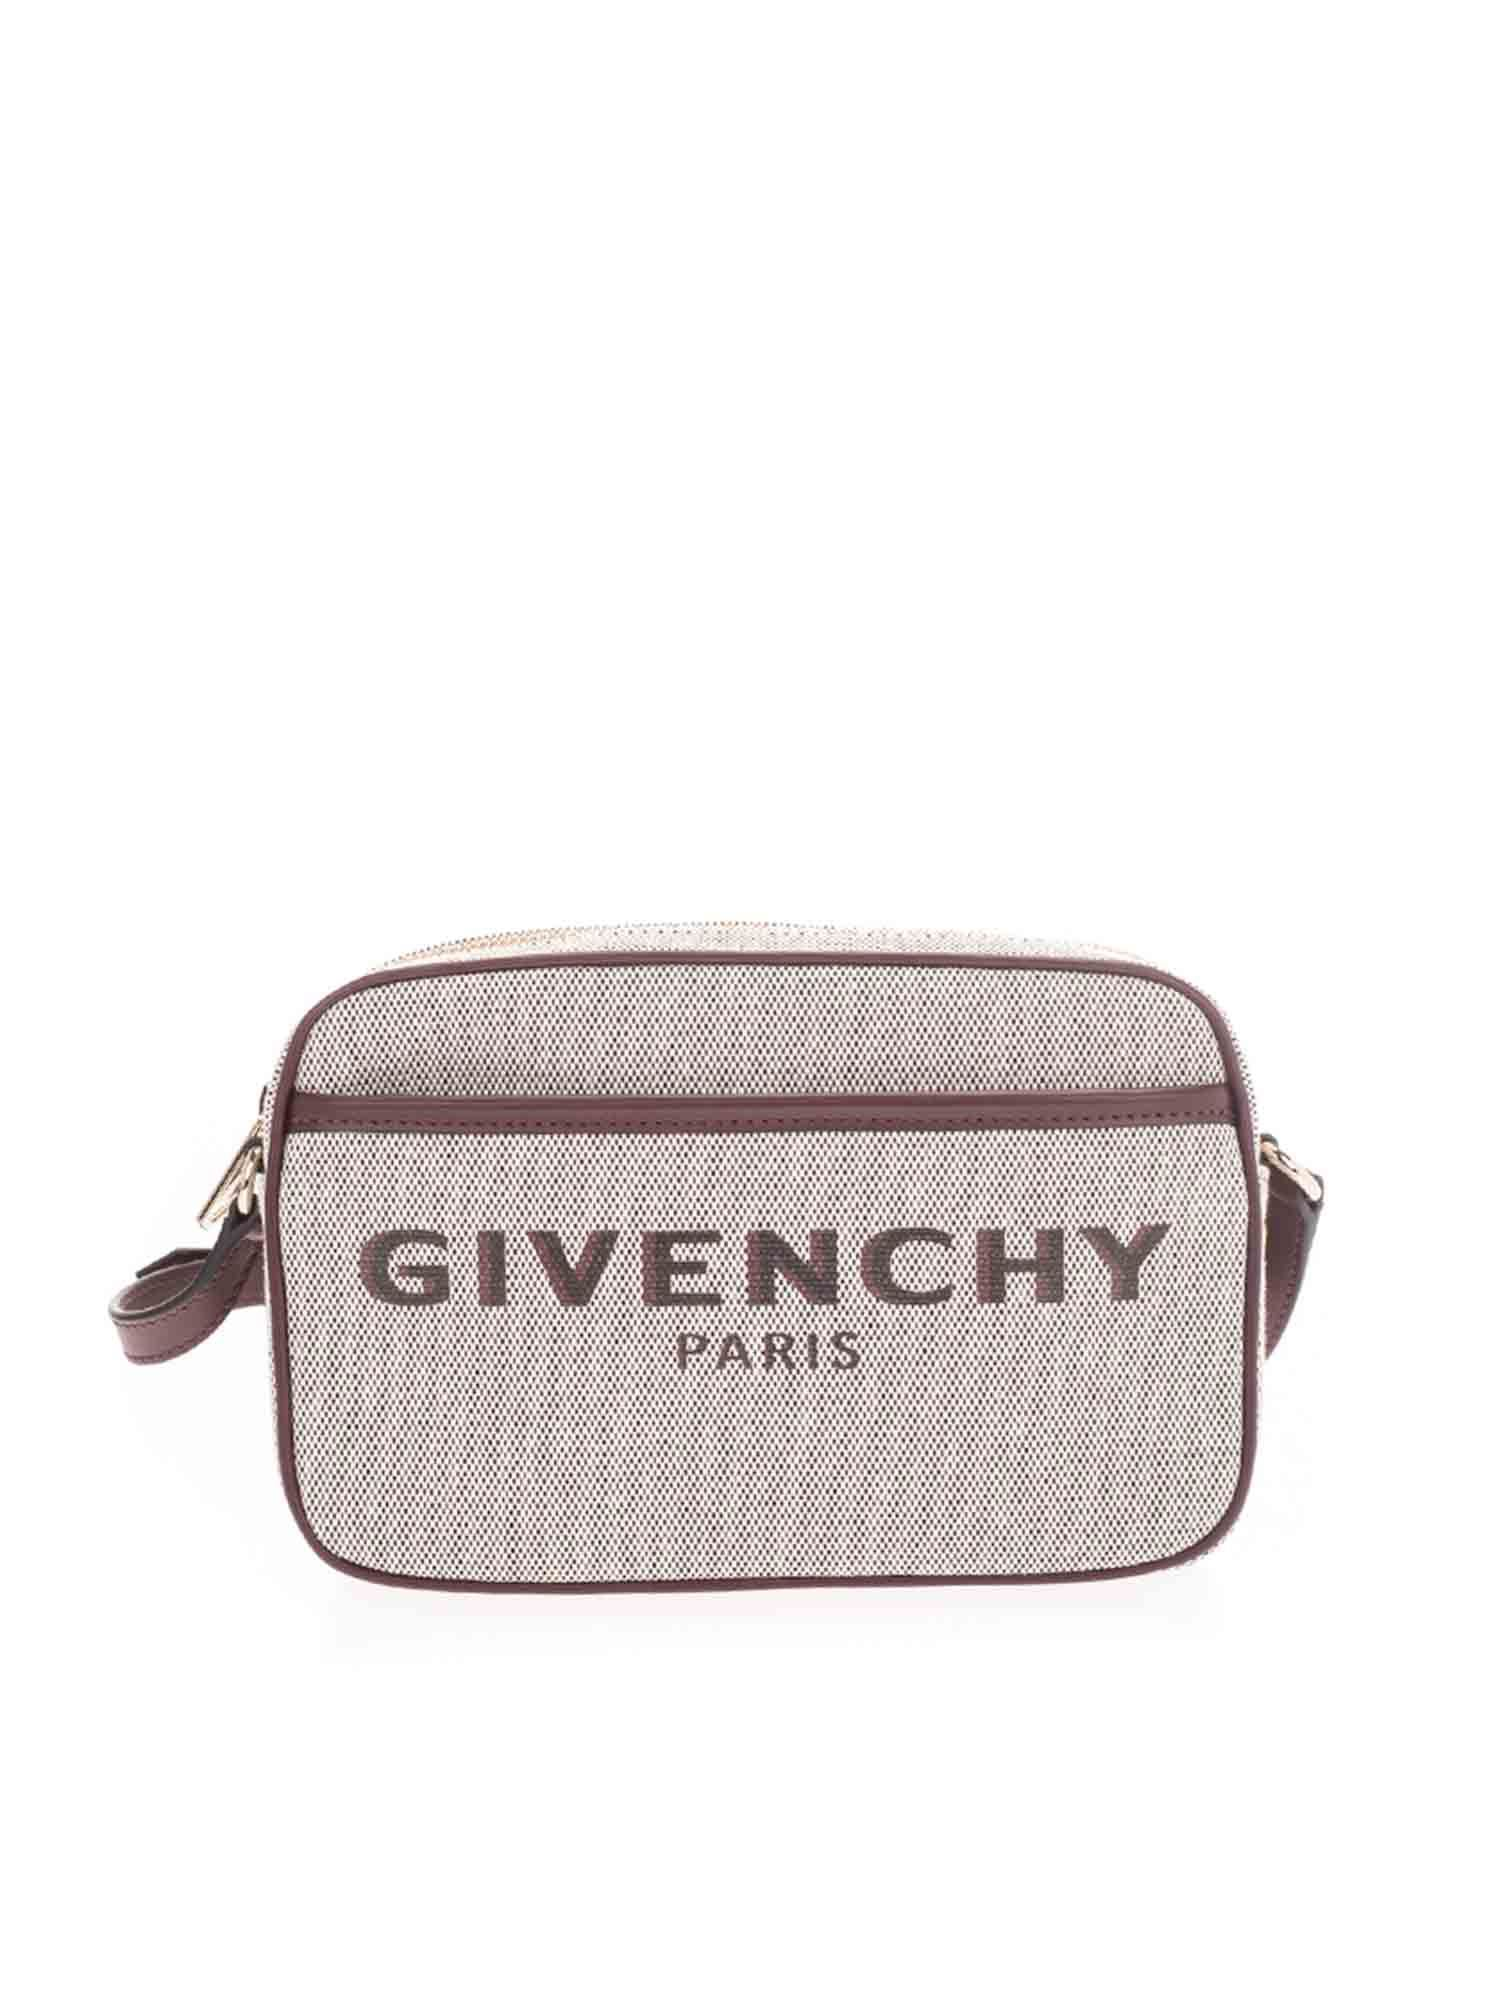 Givenchy BOND BAG IN BEIGE AND AUBERGINE